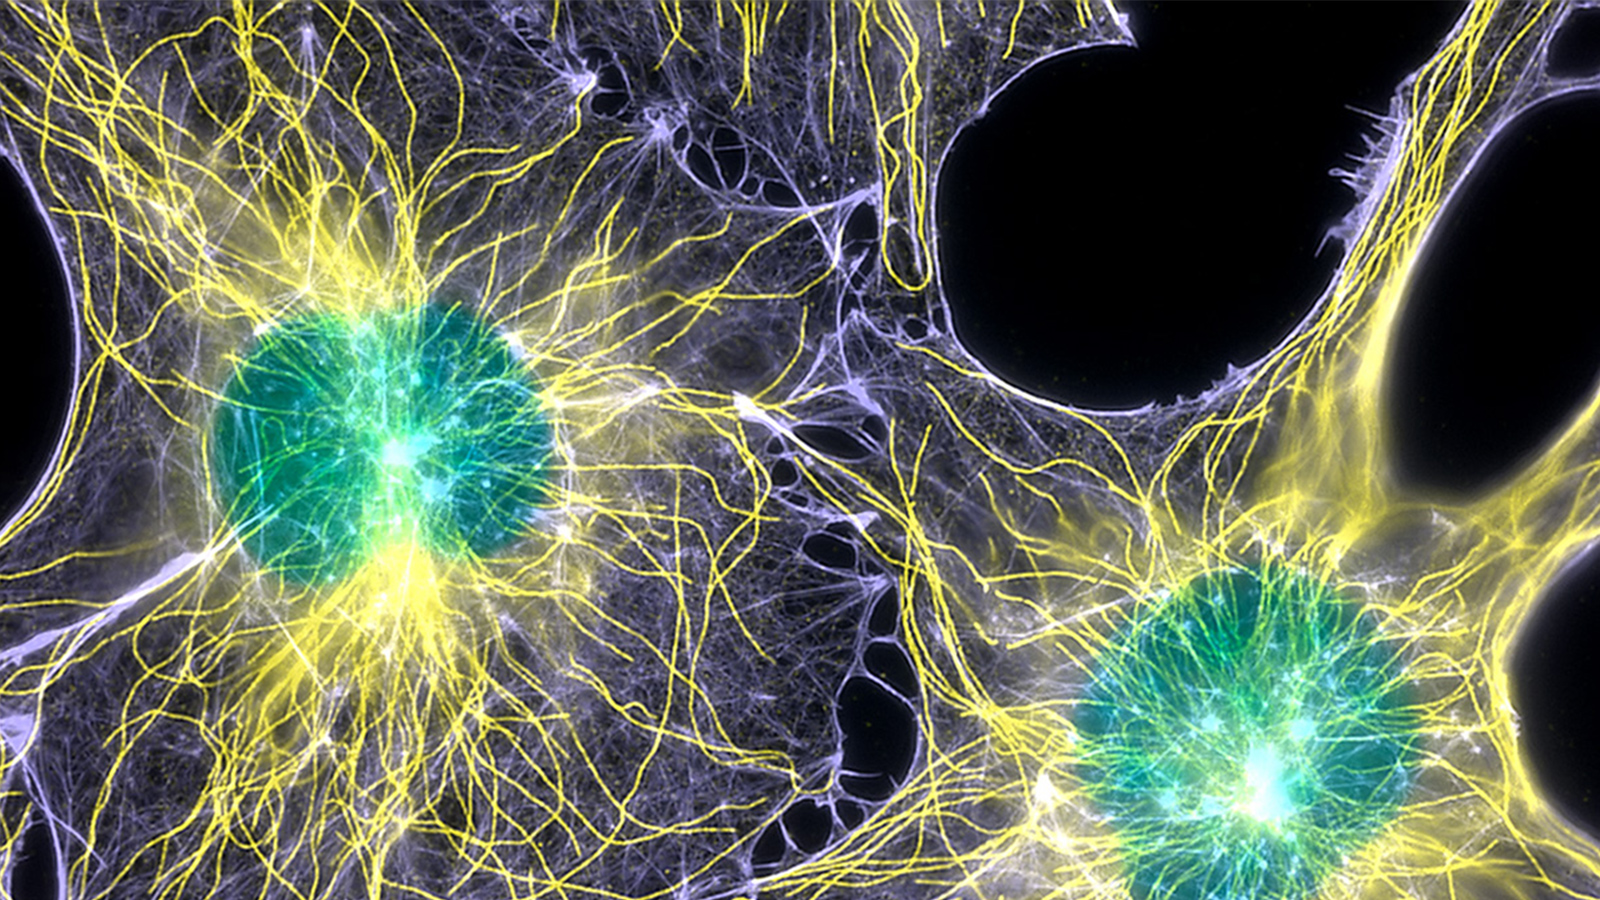 Cell Biology - Actin, microtubules, and nuclei